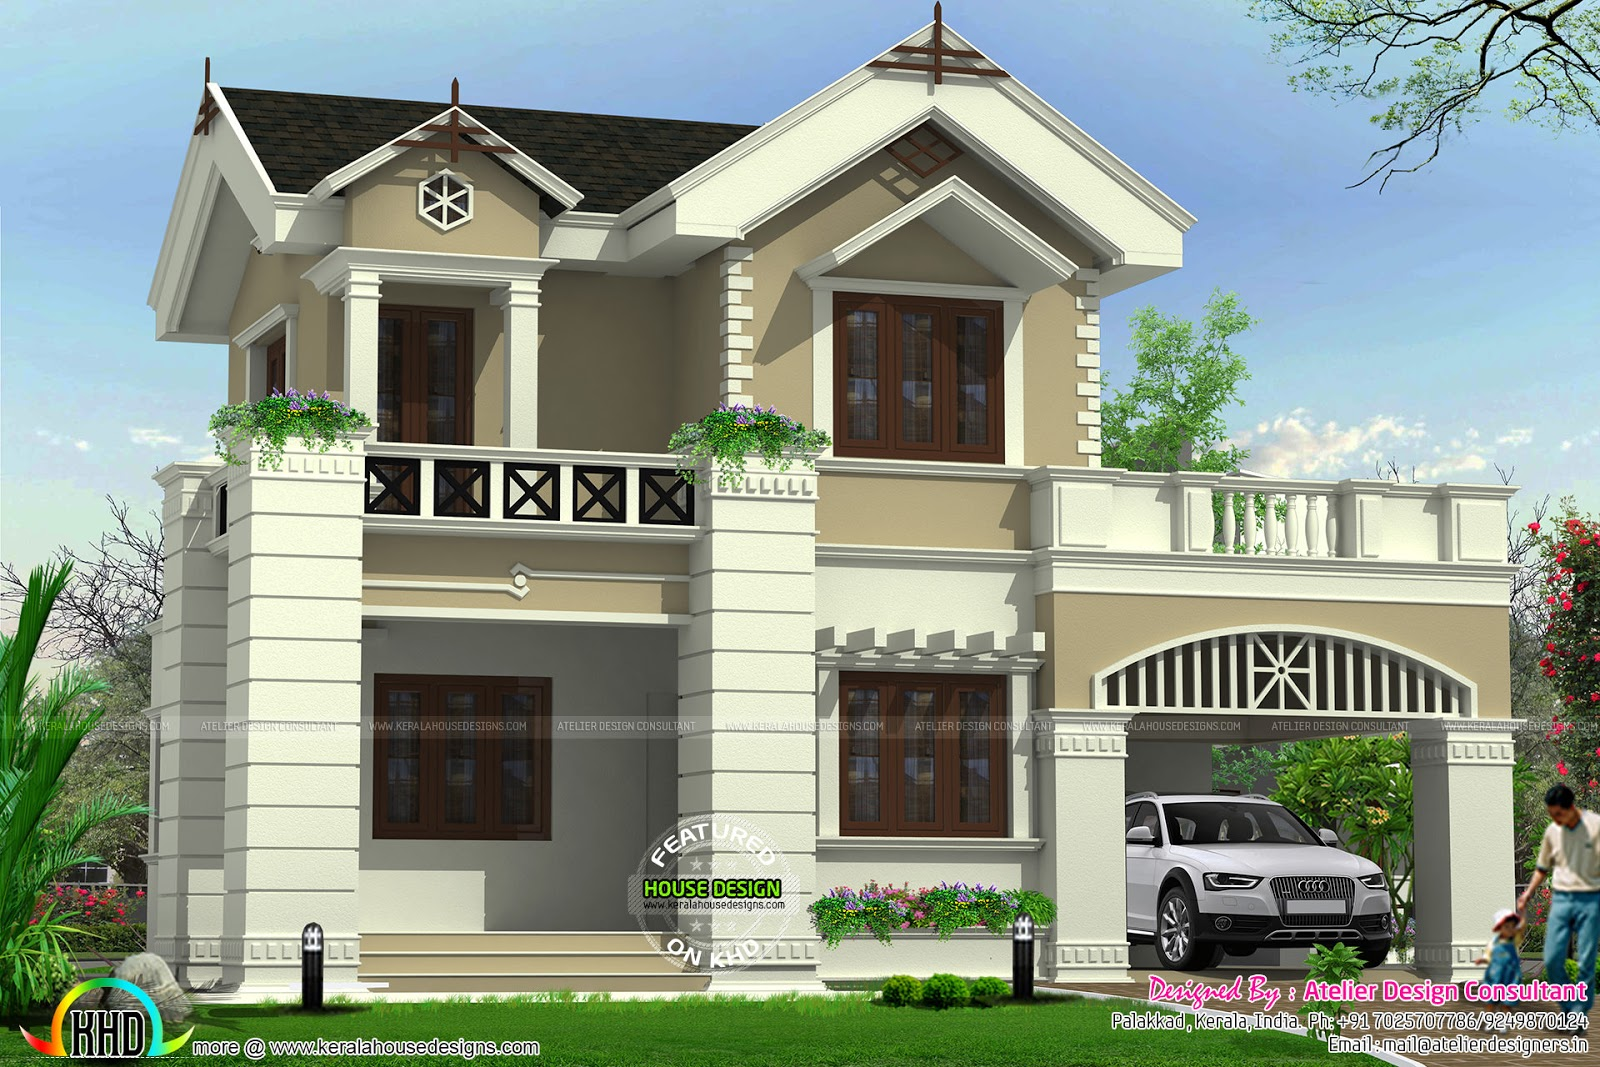 Cute victorian model home kerala home design and floor plans for Photos of model homes